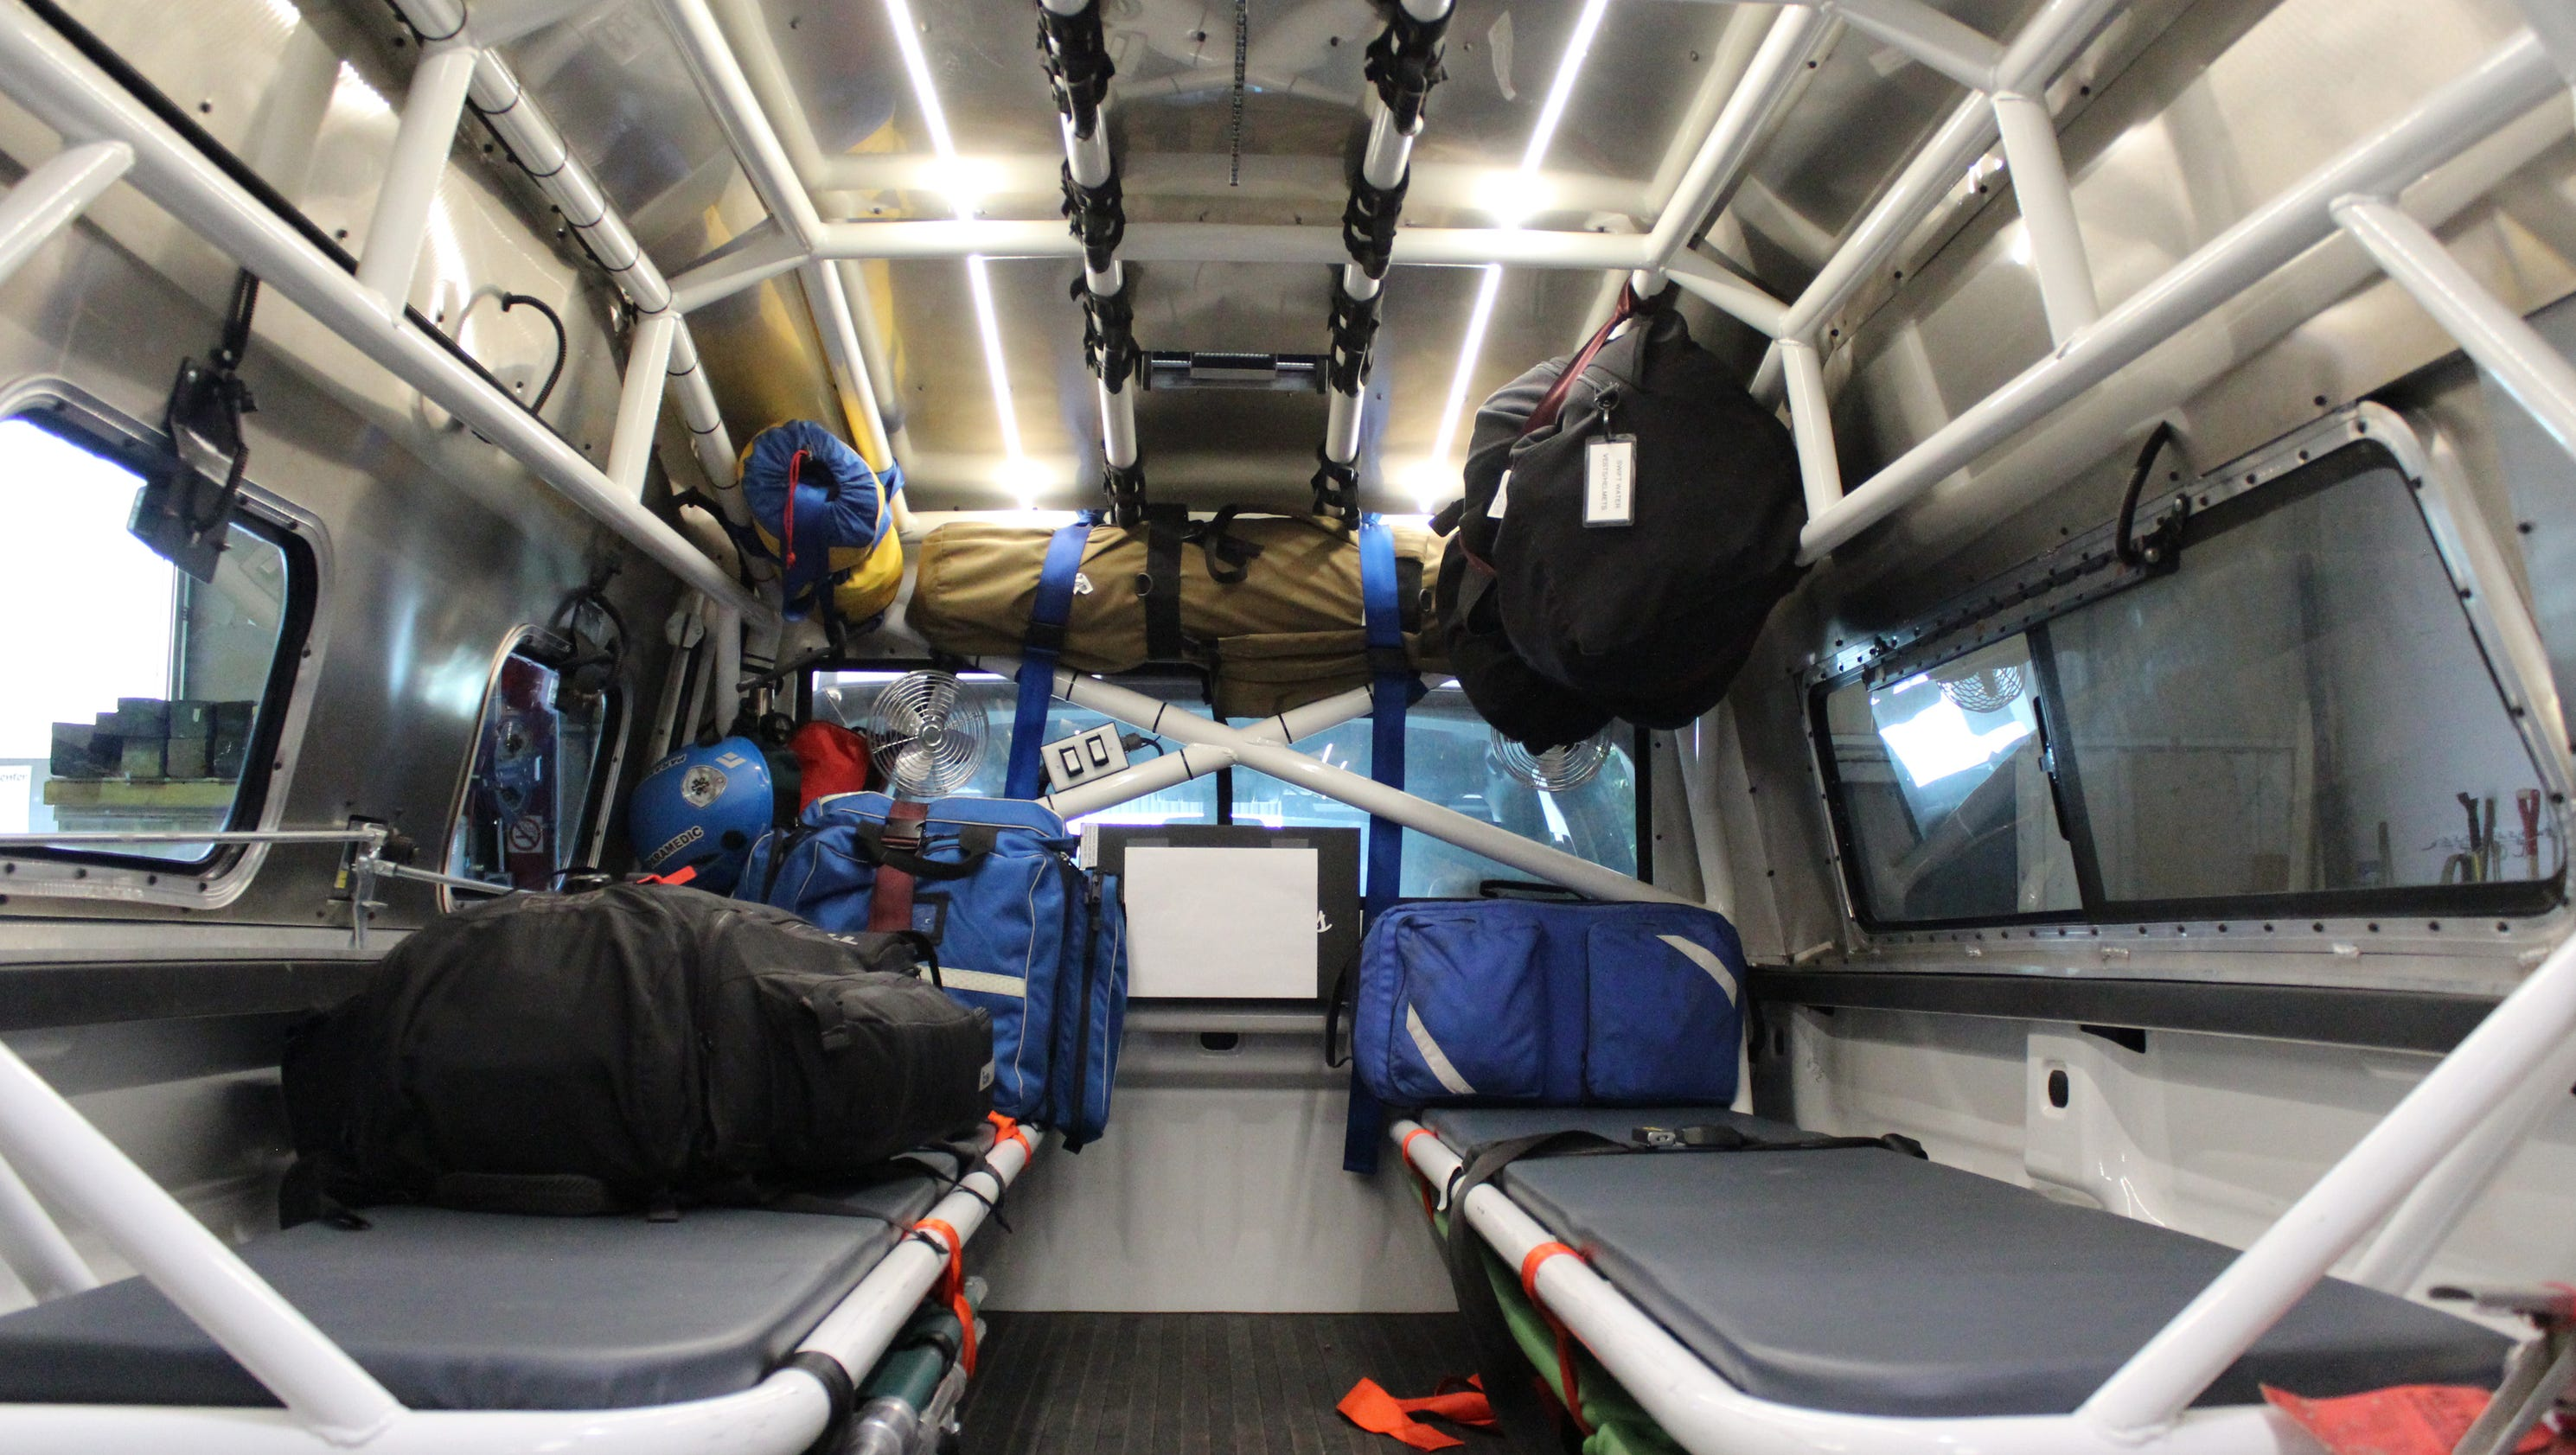 Pvh Introduces Swiss Army Knife Of Ems Vehicles